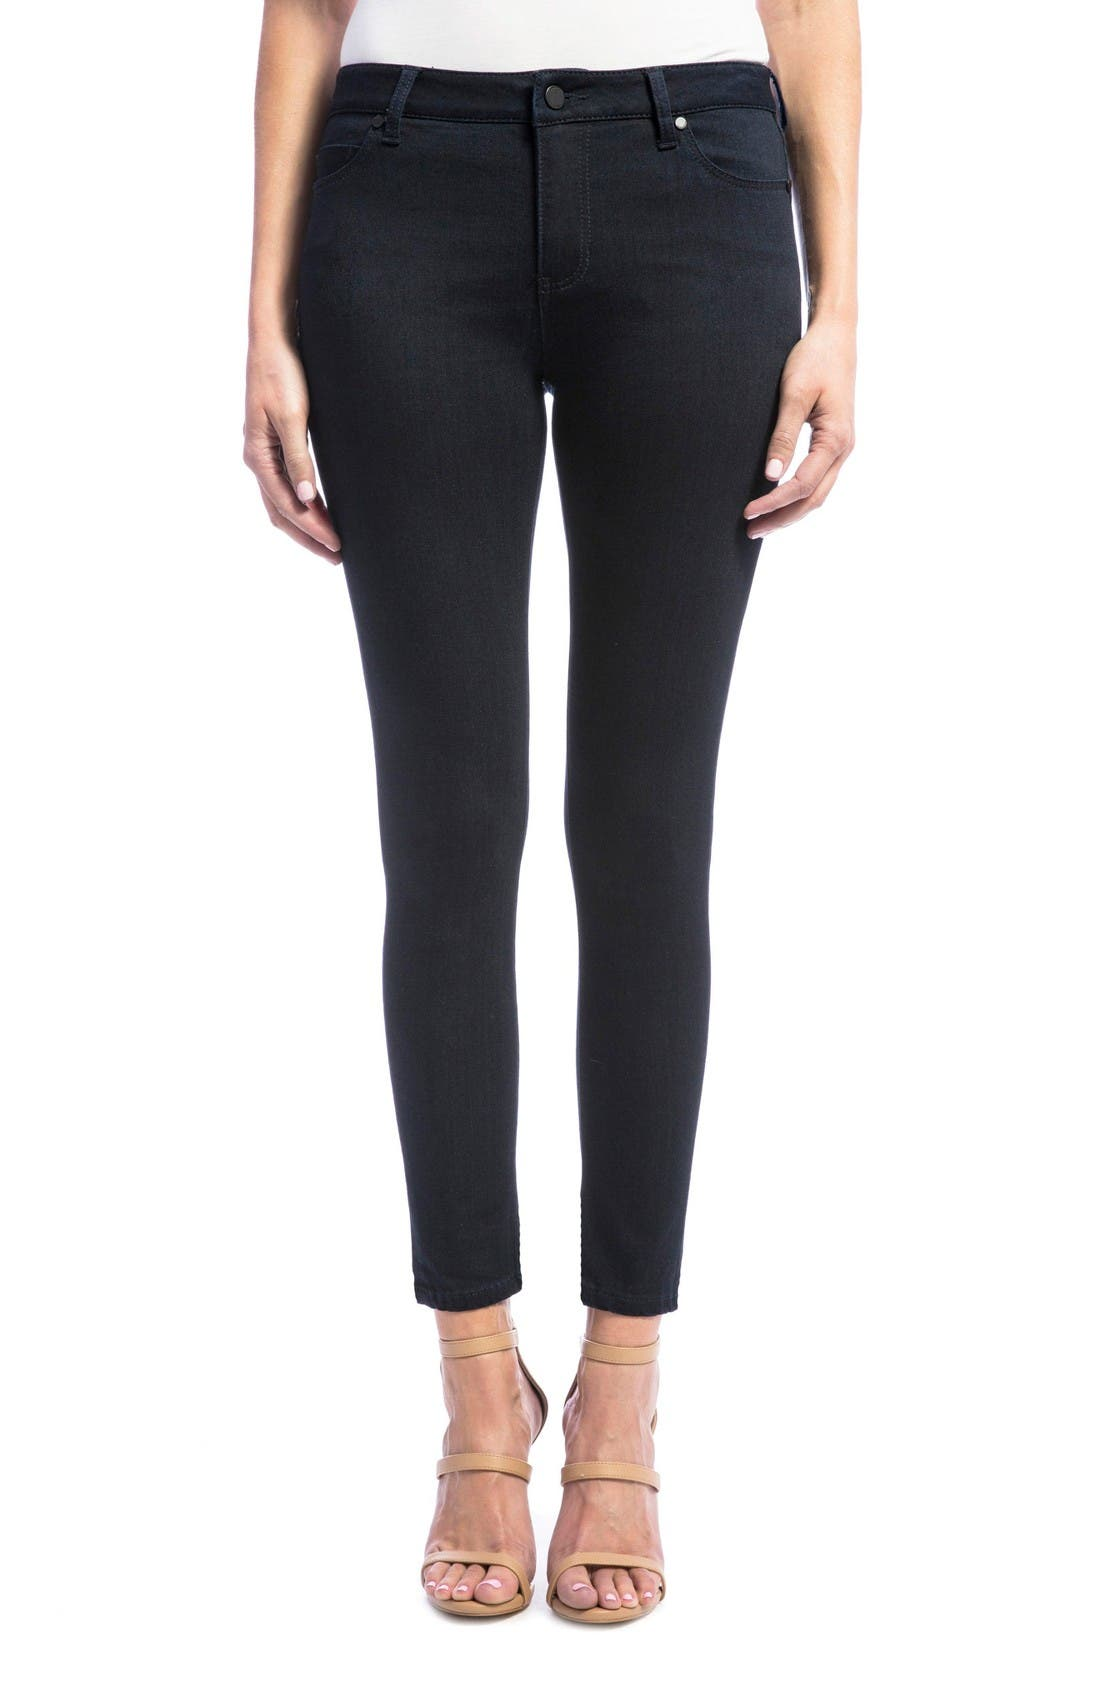 Liverpool Jeans Company Penny Skinny Ankle Jeans (Regular & Petite)